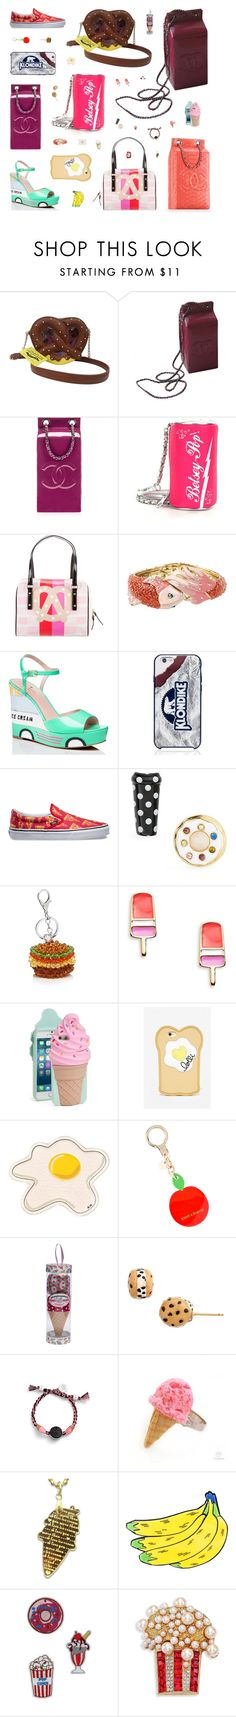 """""""Trending Now: Food Fashion #7"""" by belenloperfido ❤ liked on Polyvore featuring Betsey Johnson, Chanel, Kate Spade, Vans, House of Holland, Lolli Swim, Anya Hindmarch, Venessa Arizaga, Sweet & Co. and Yazbukey"""